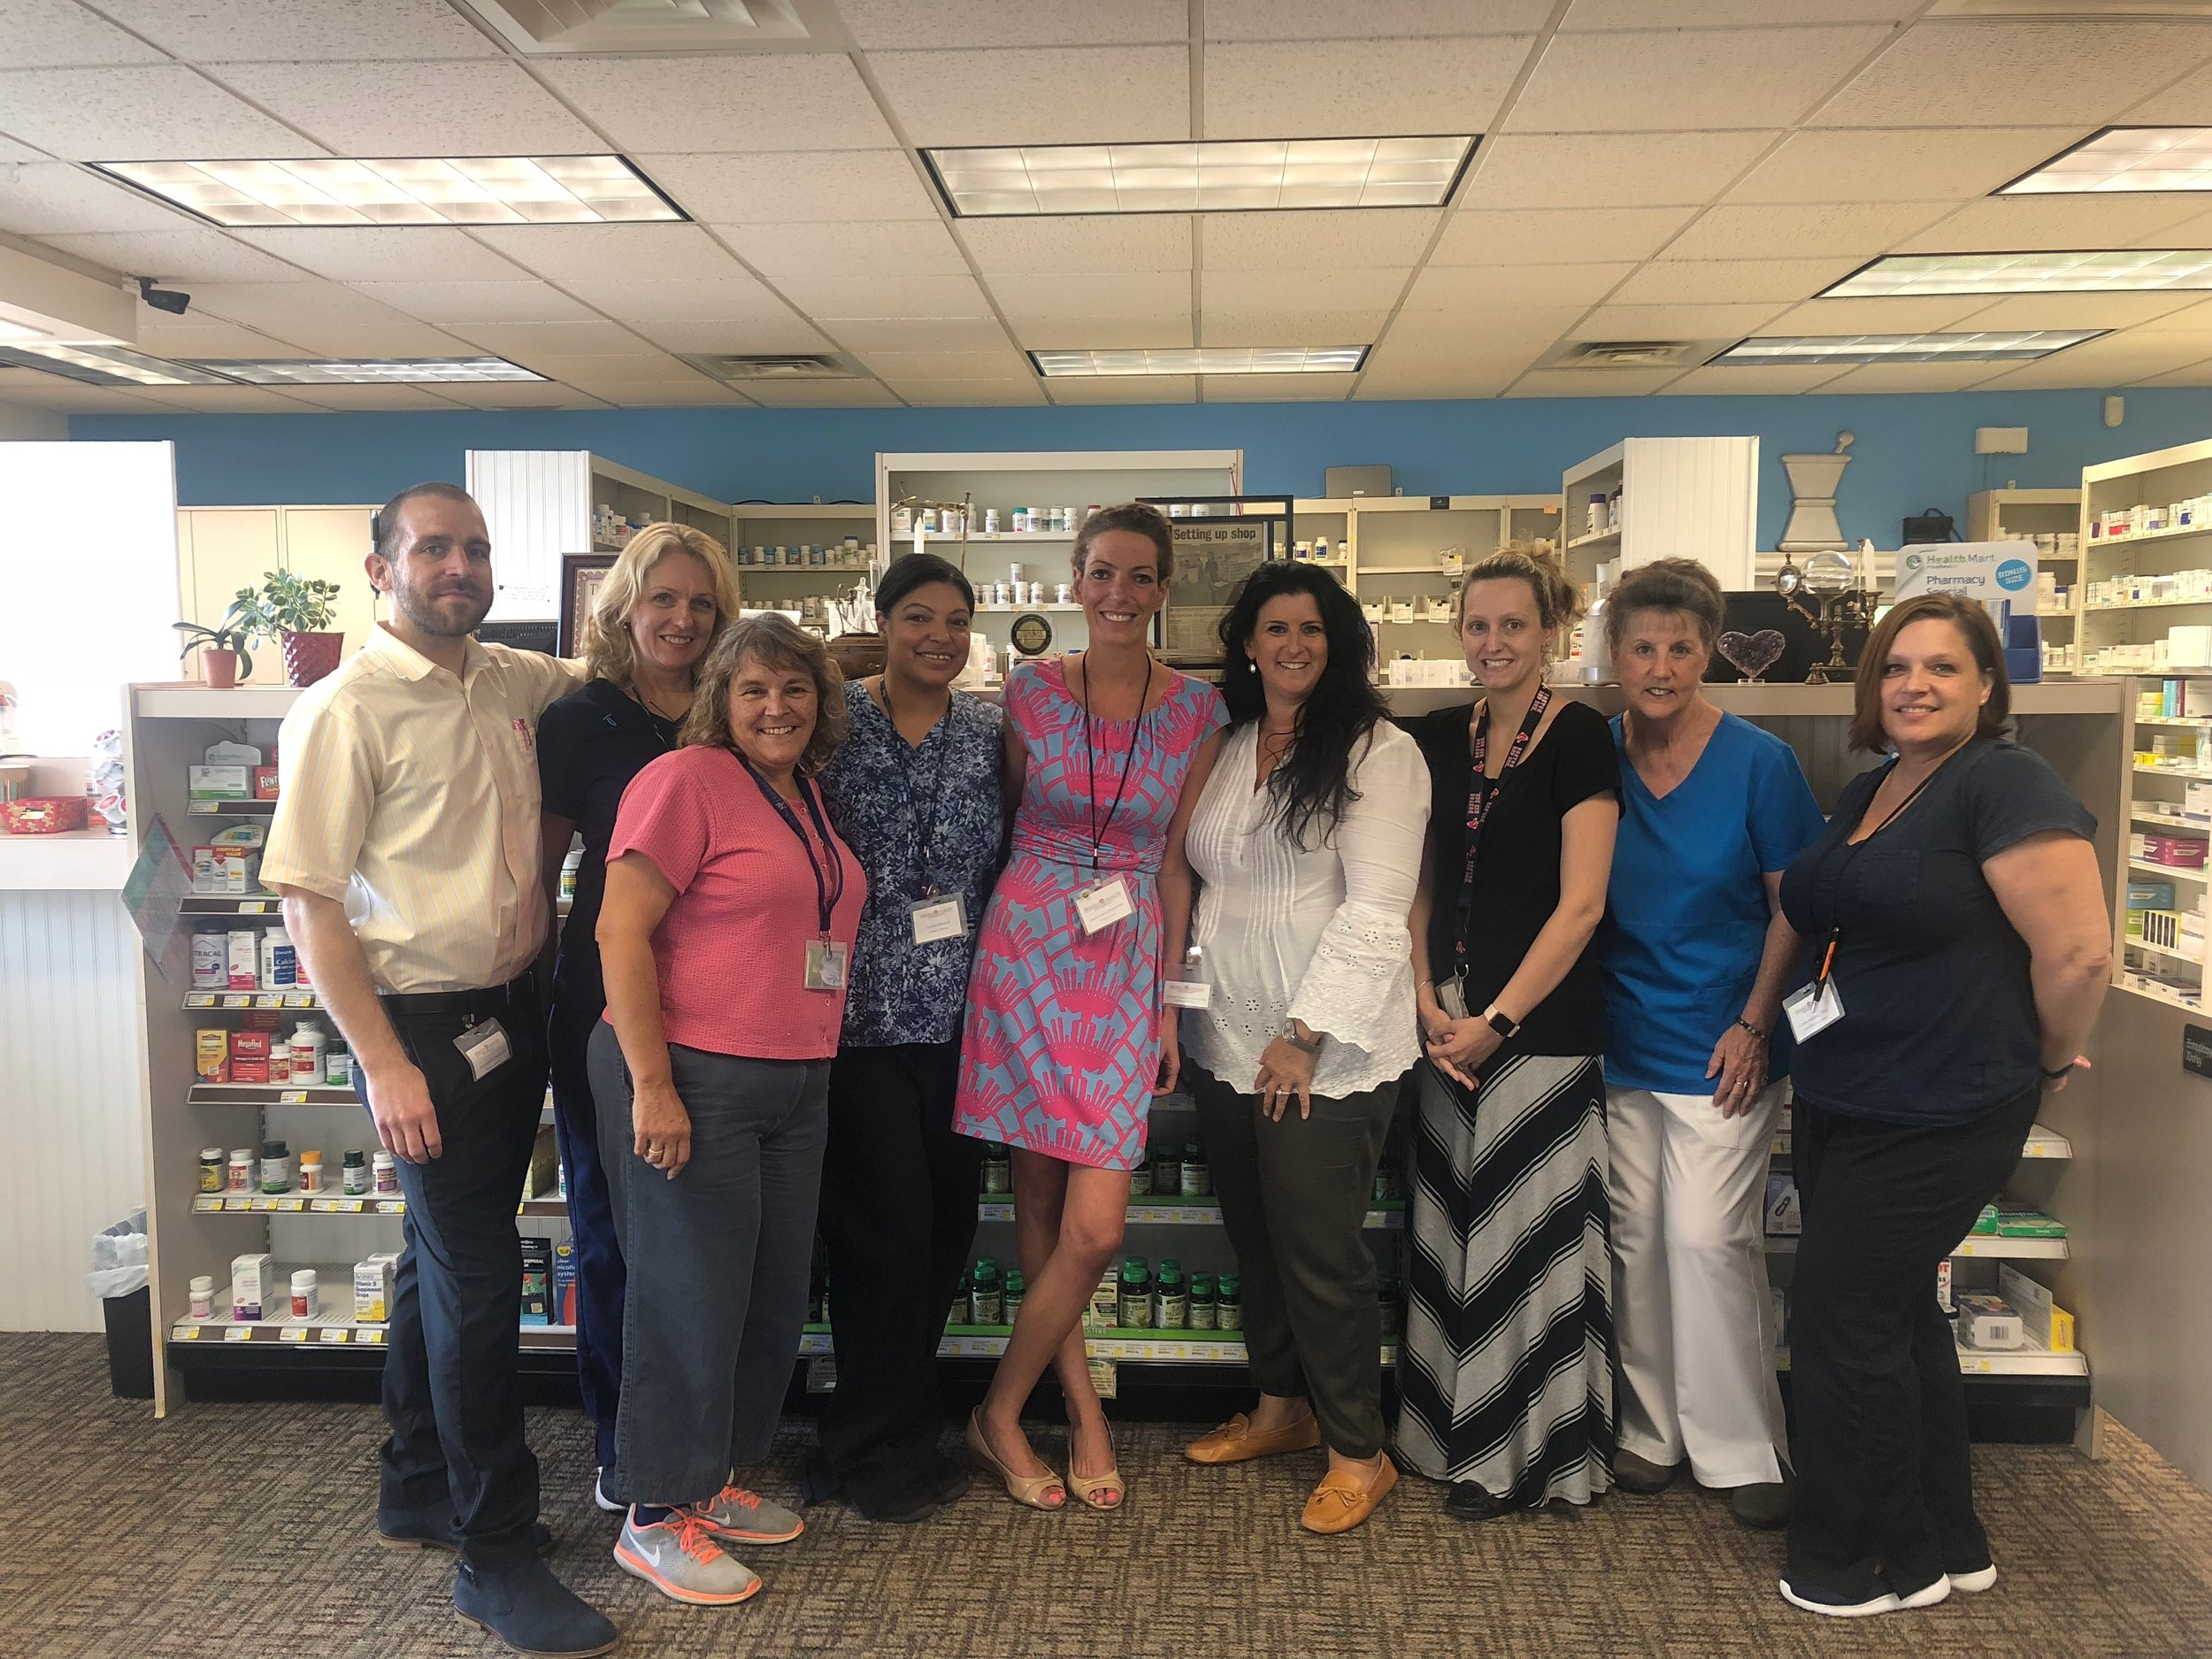 Karryn Lewis (center) and her staff at Whole Health Pharmacy